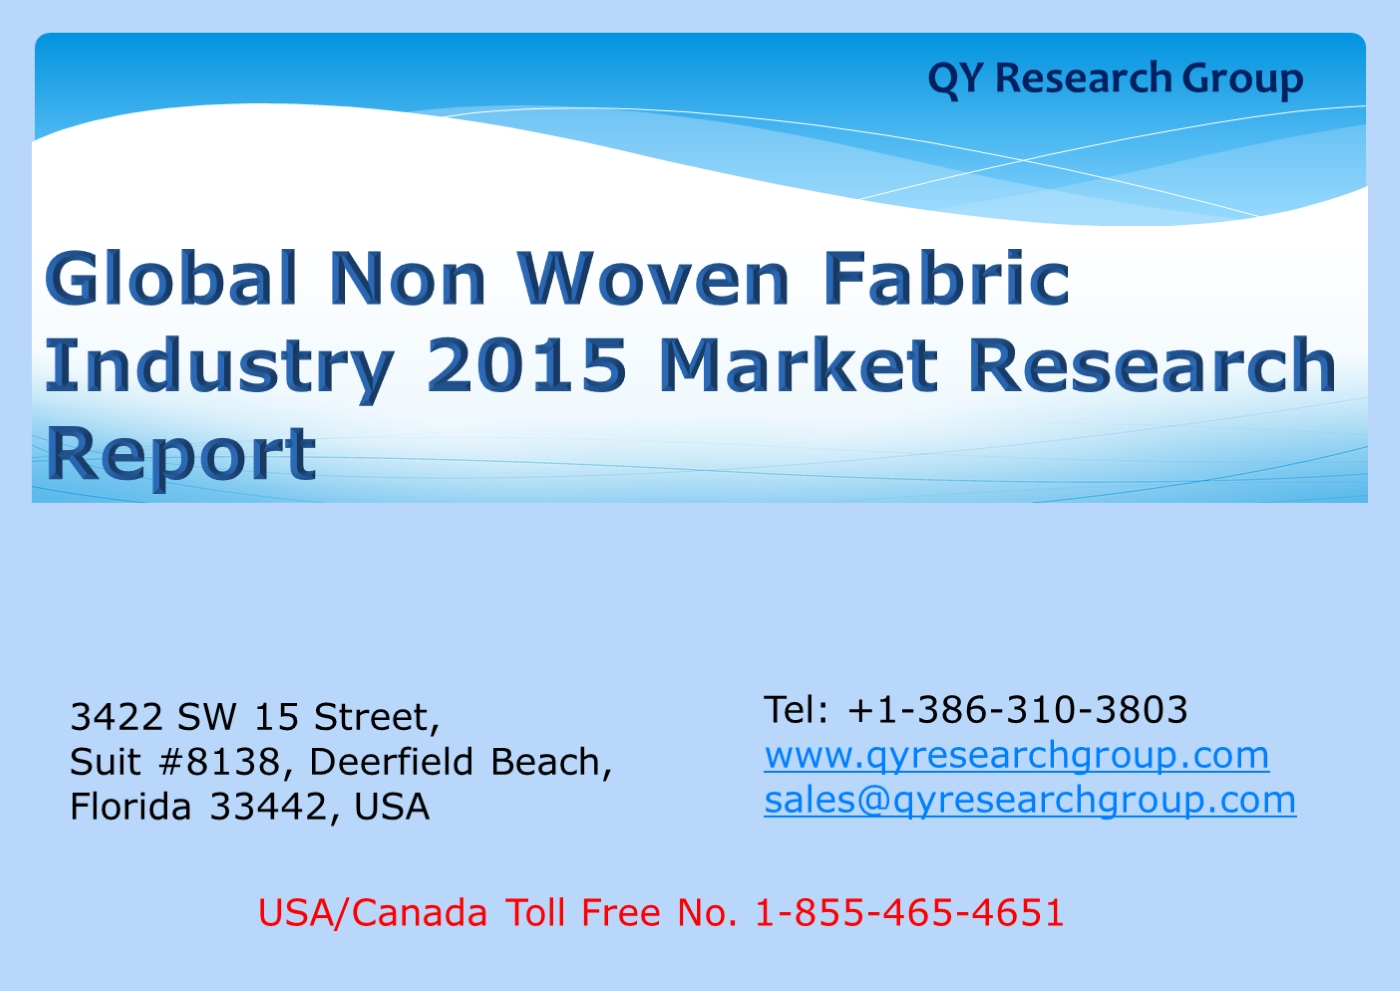 Global Non Woven Fabric Industry 2015 Market Research Report pptx